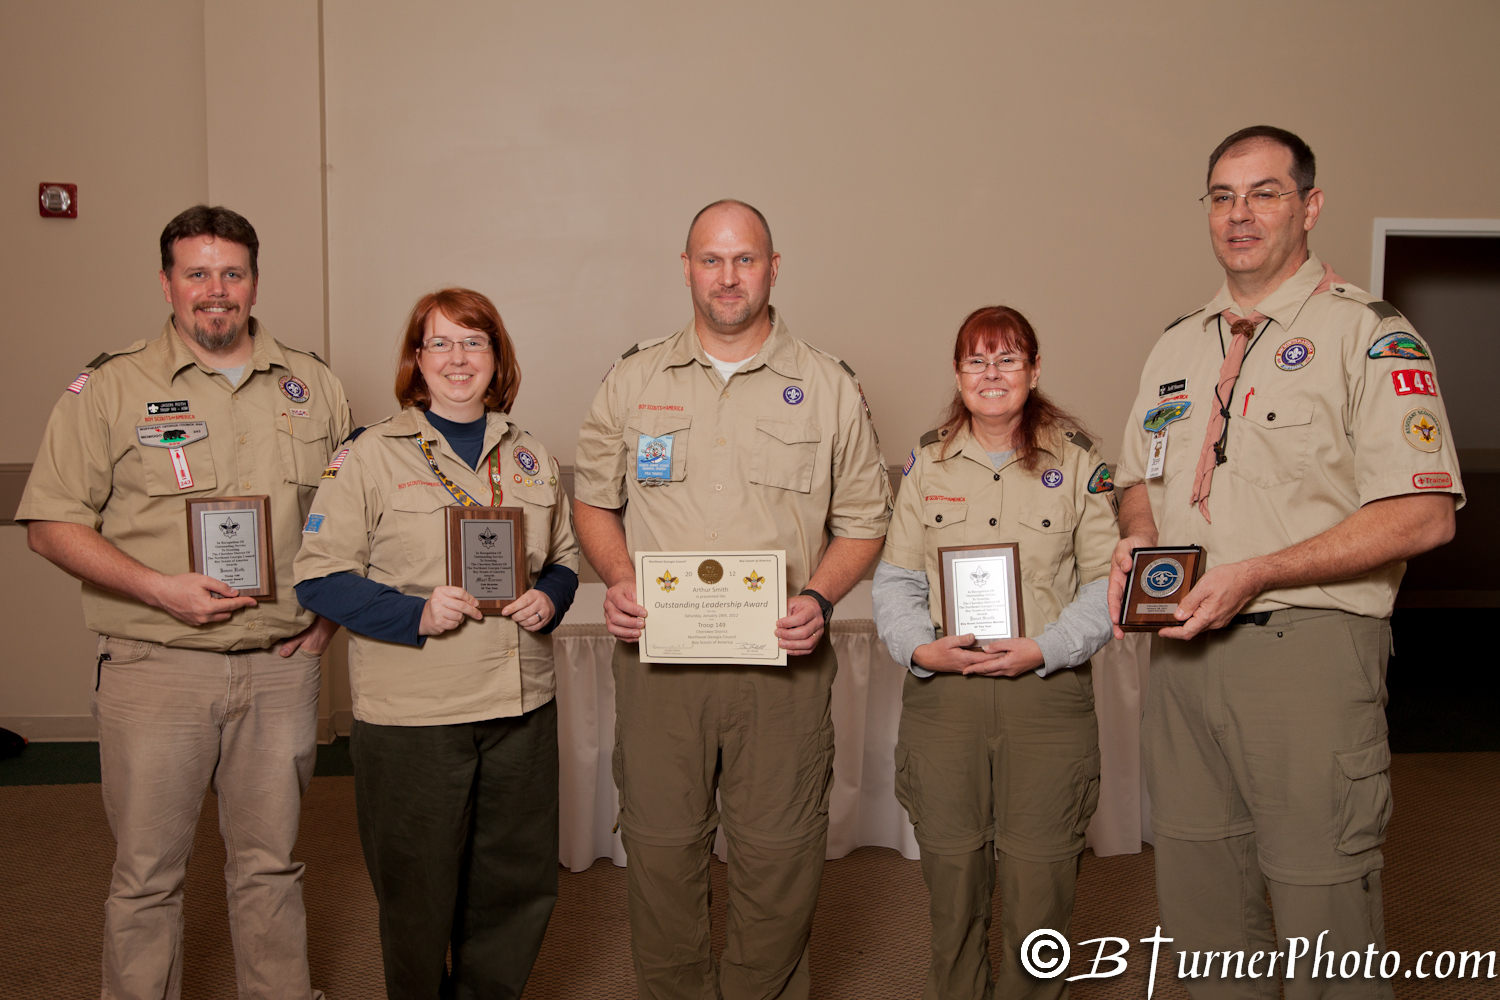 20120128_adult_leader_awards.jpg